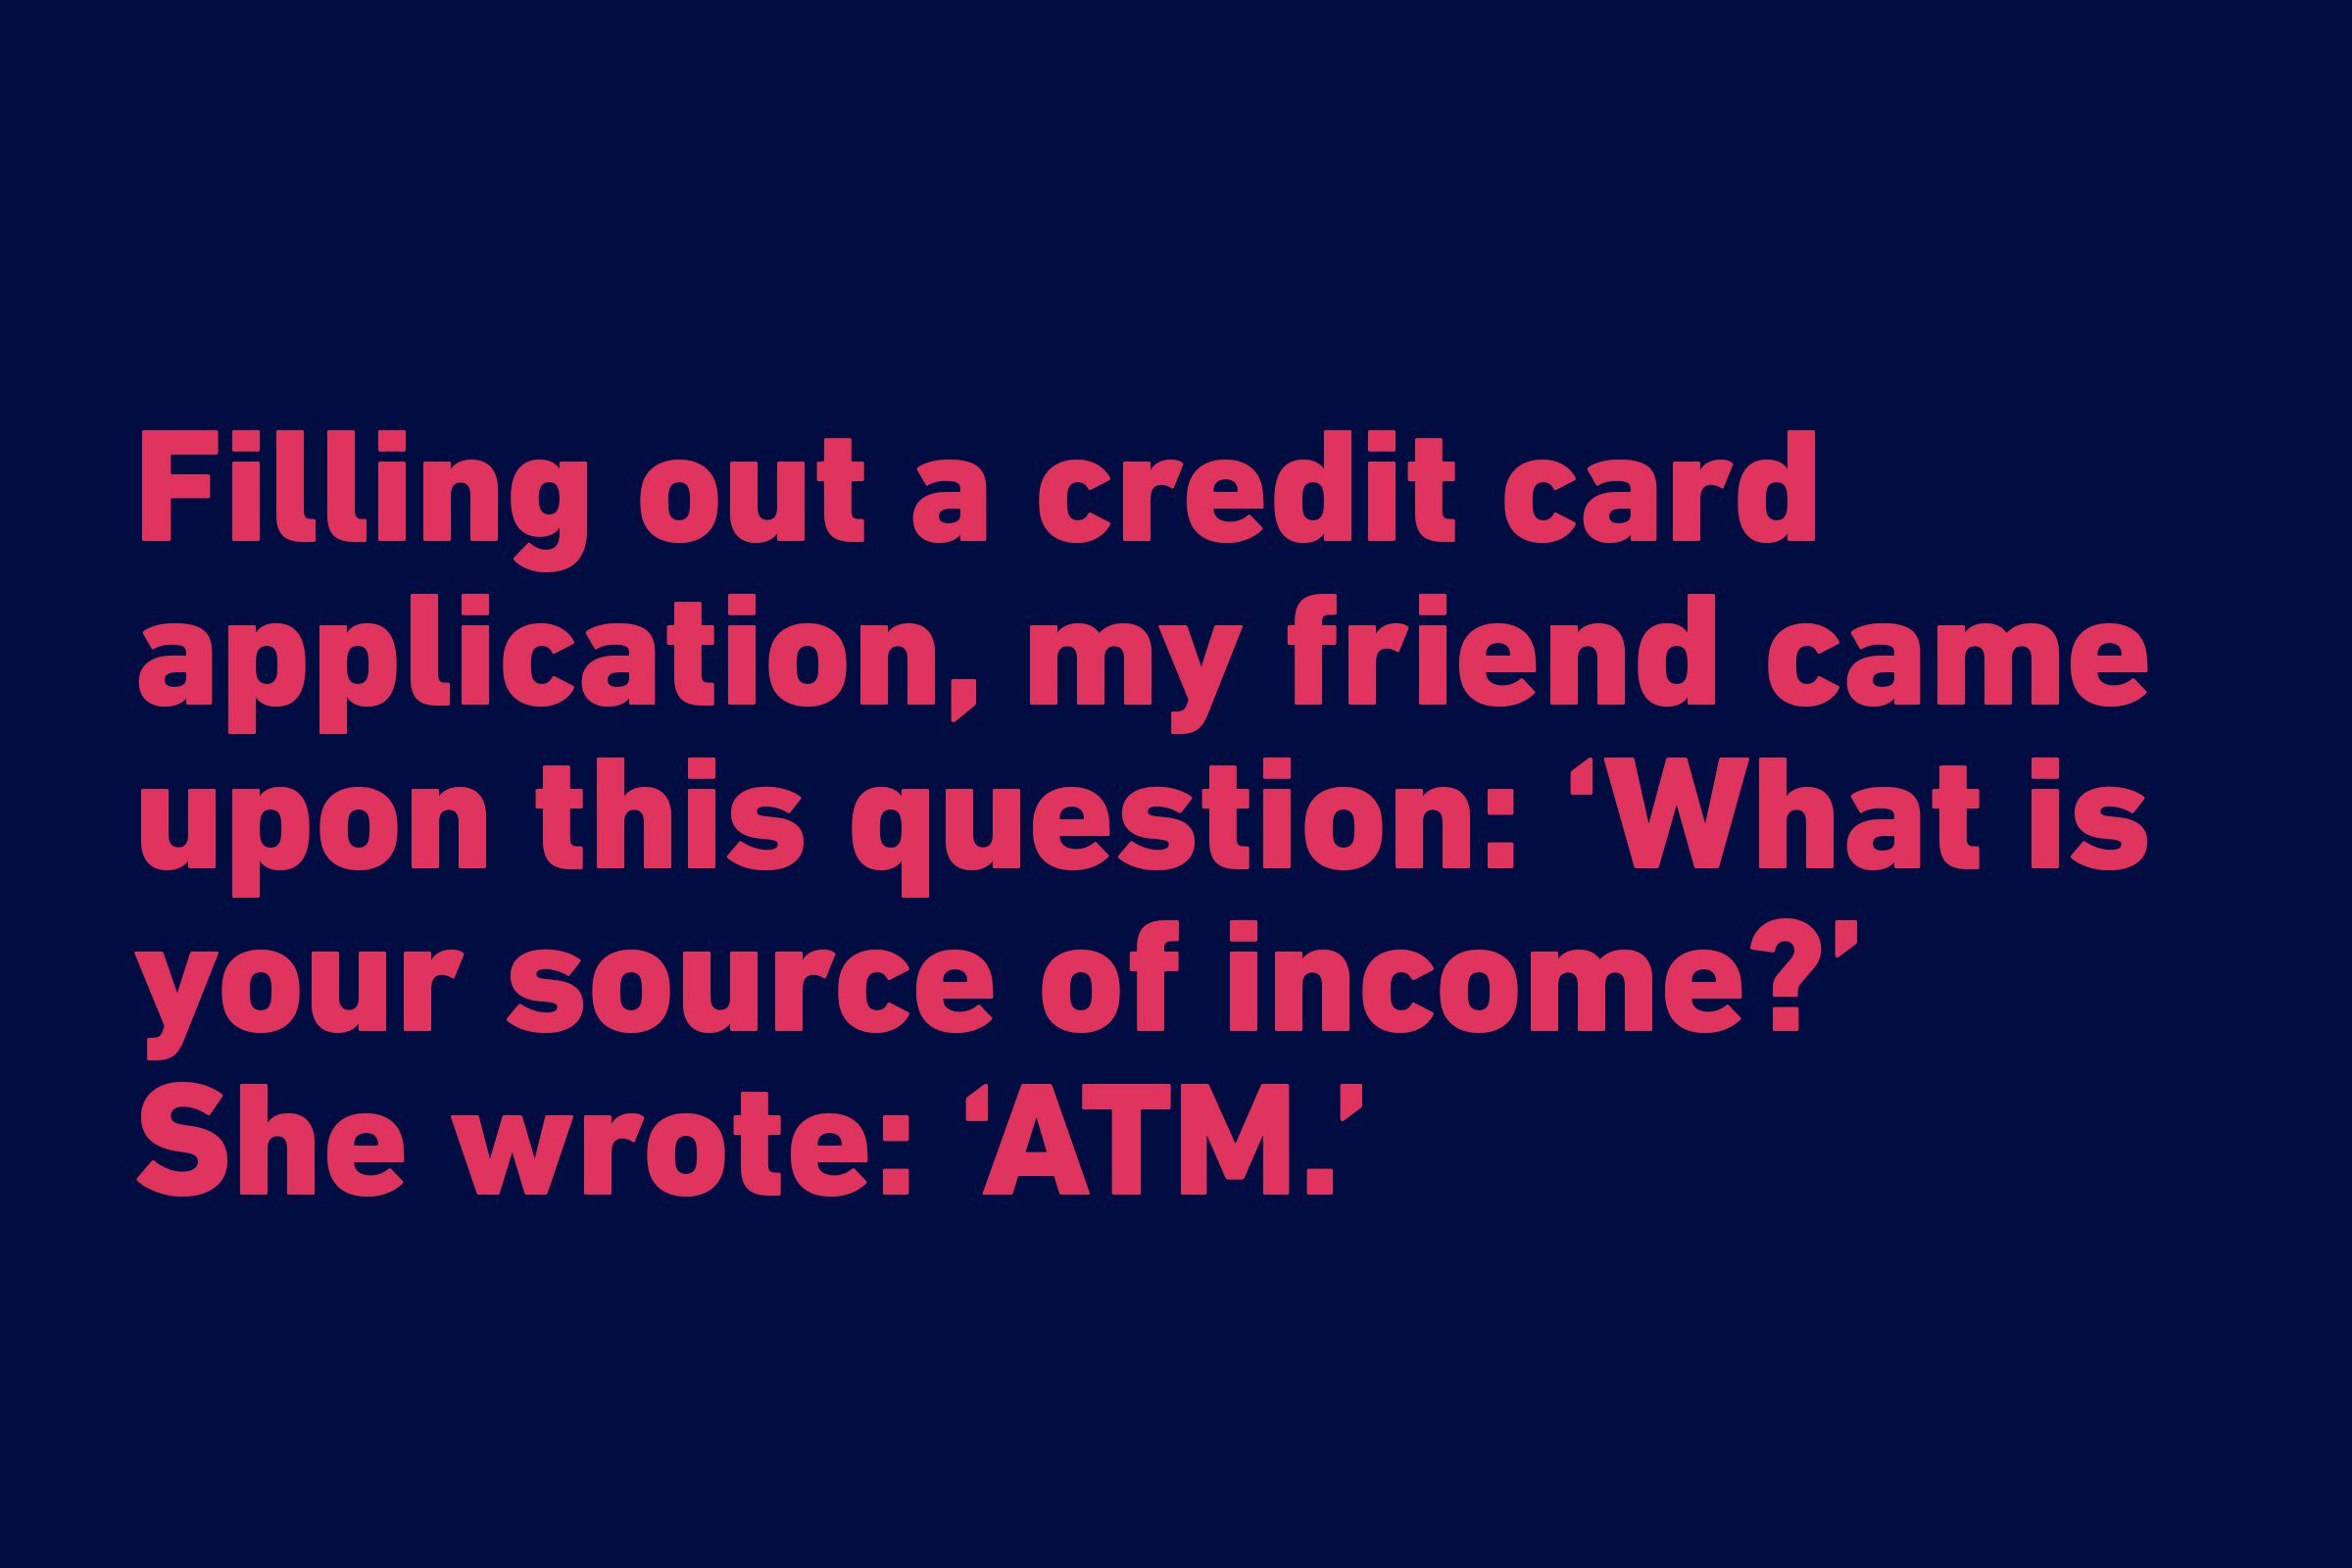 Funniest quotes of all time - ATM